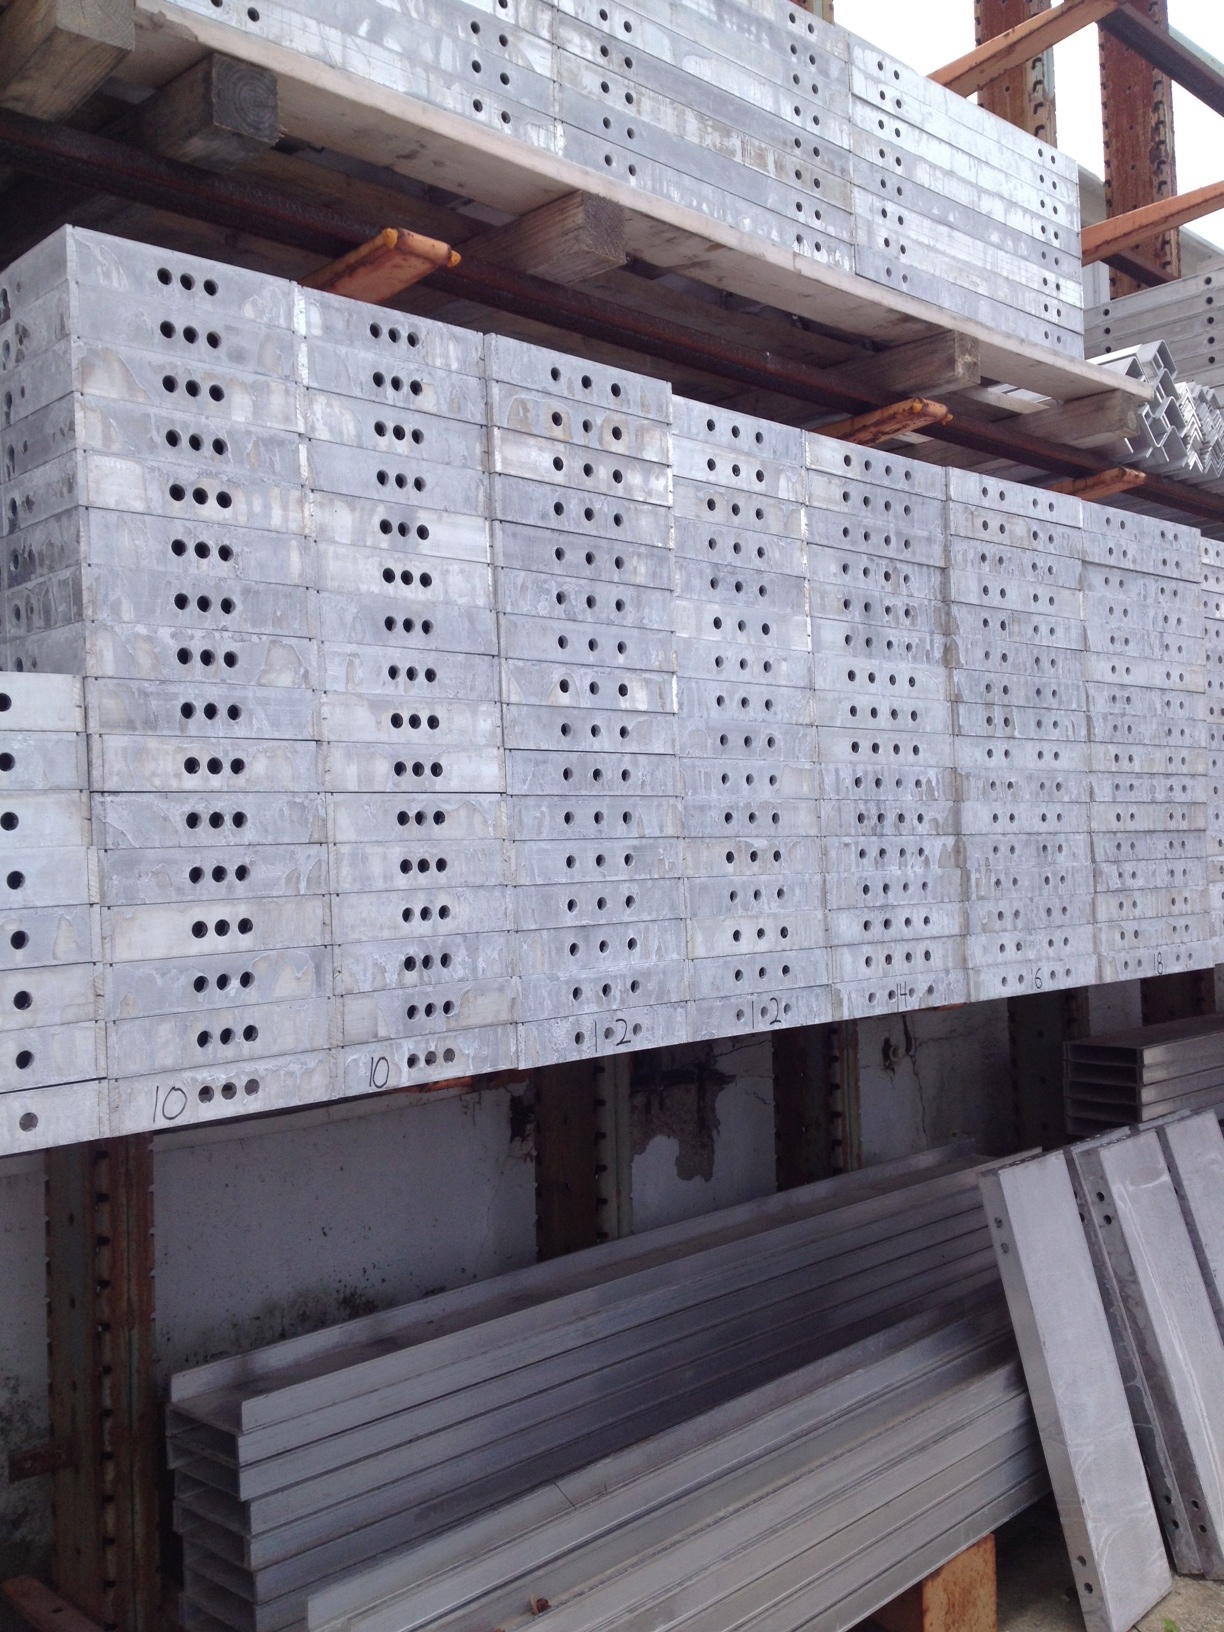 Smooth 4ft Aluminum Concrete Forms In Stock 6 12 Hole